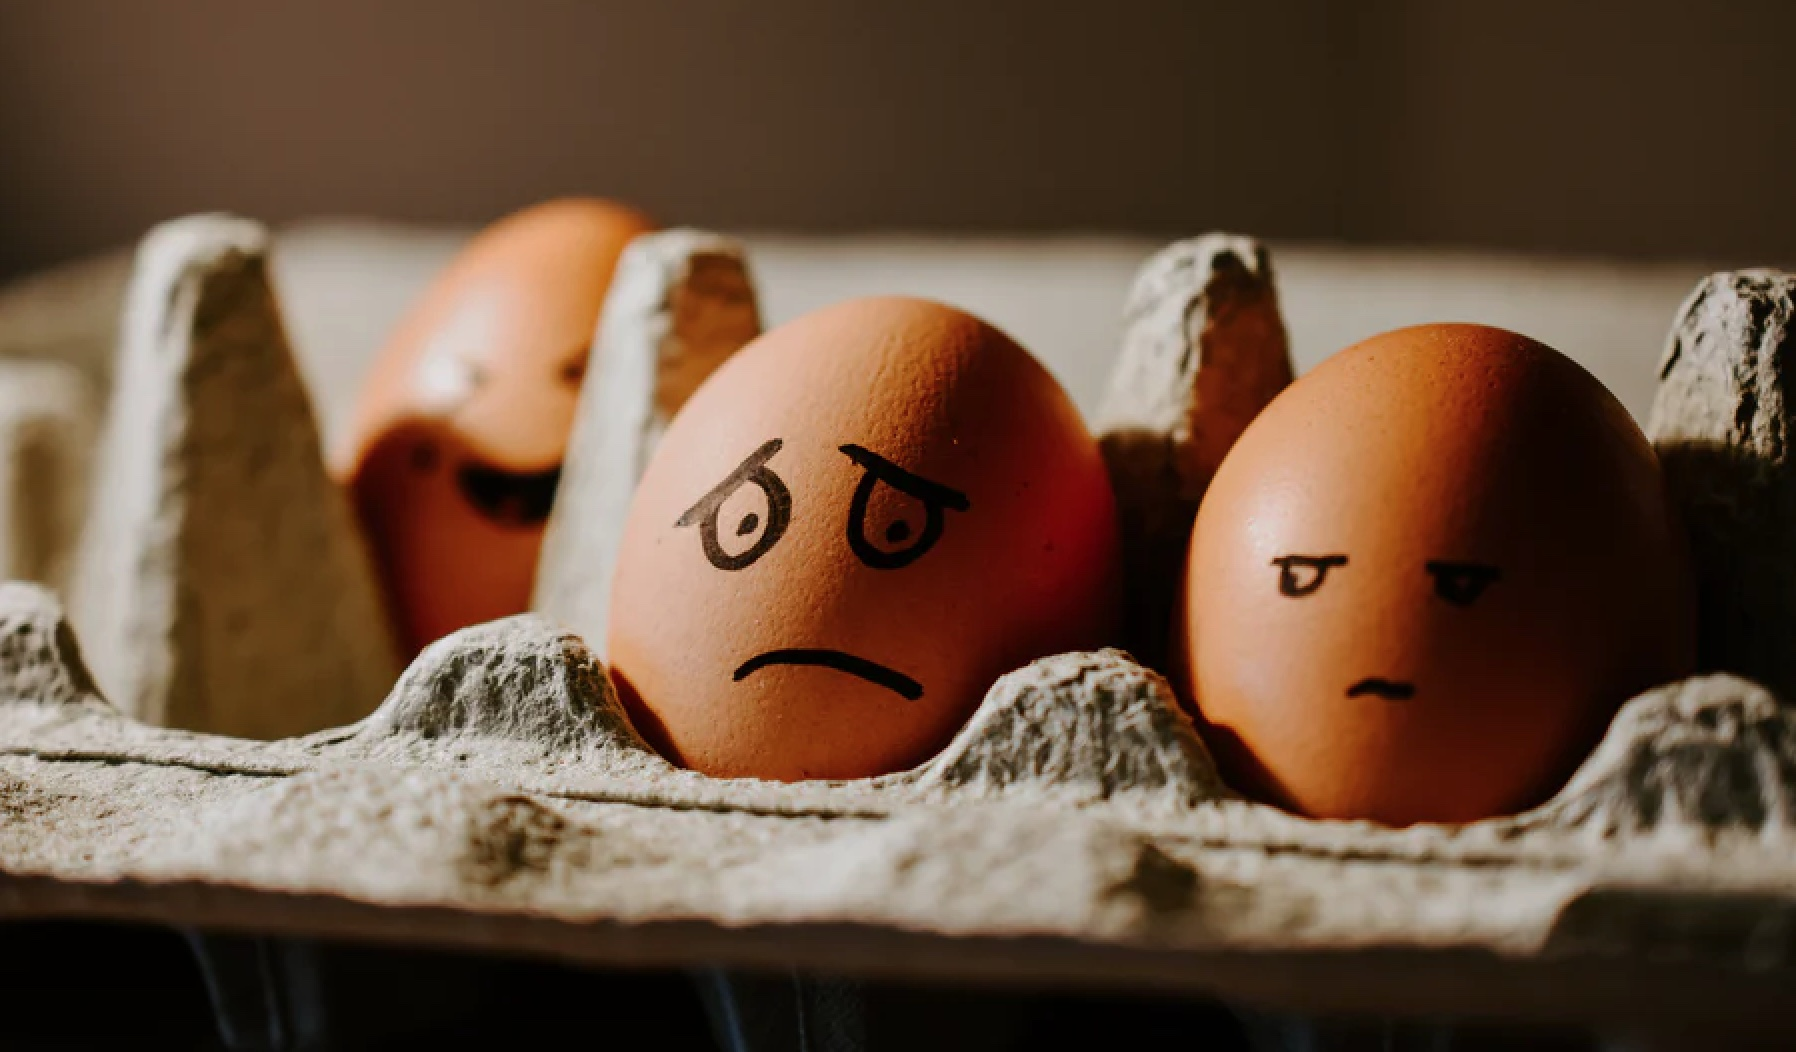 Eggs with worried face